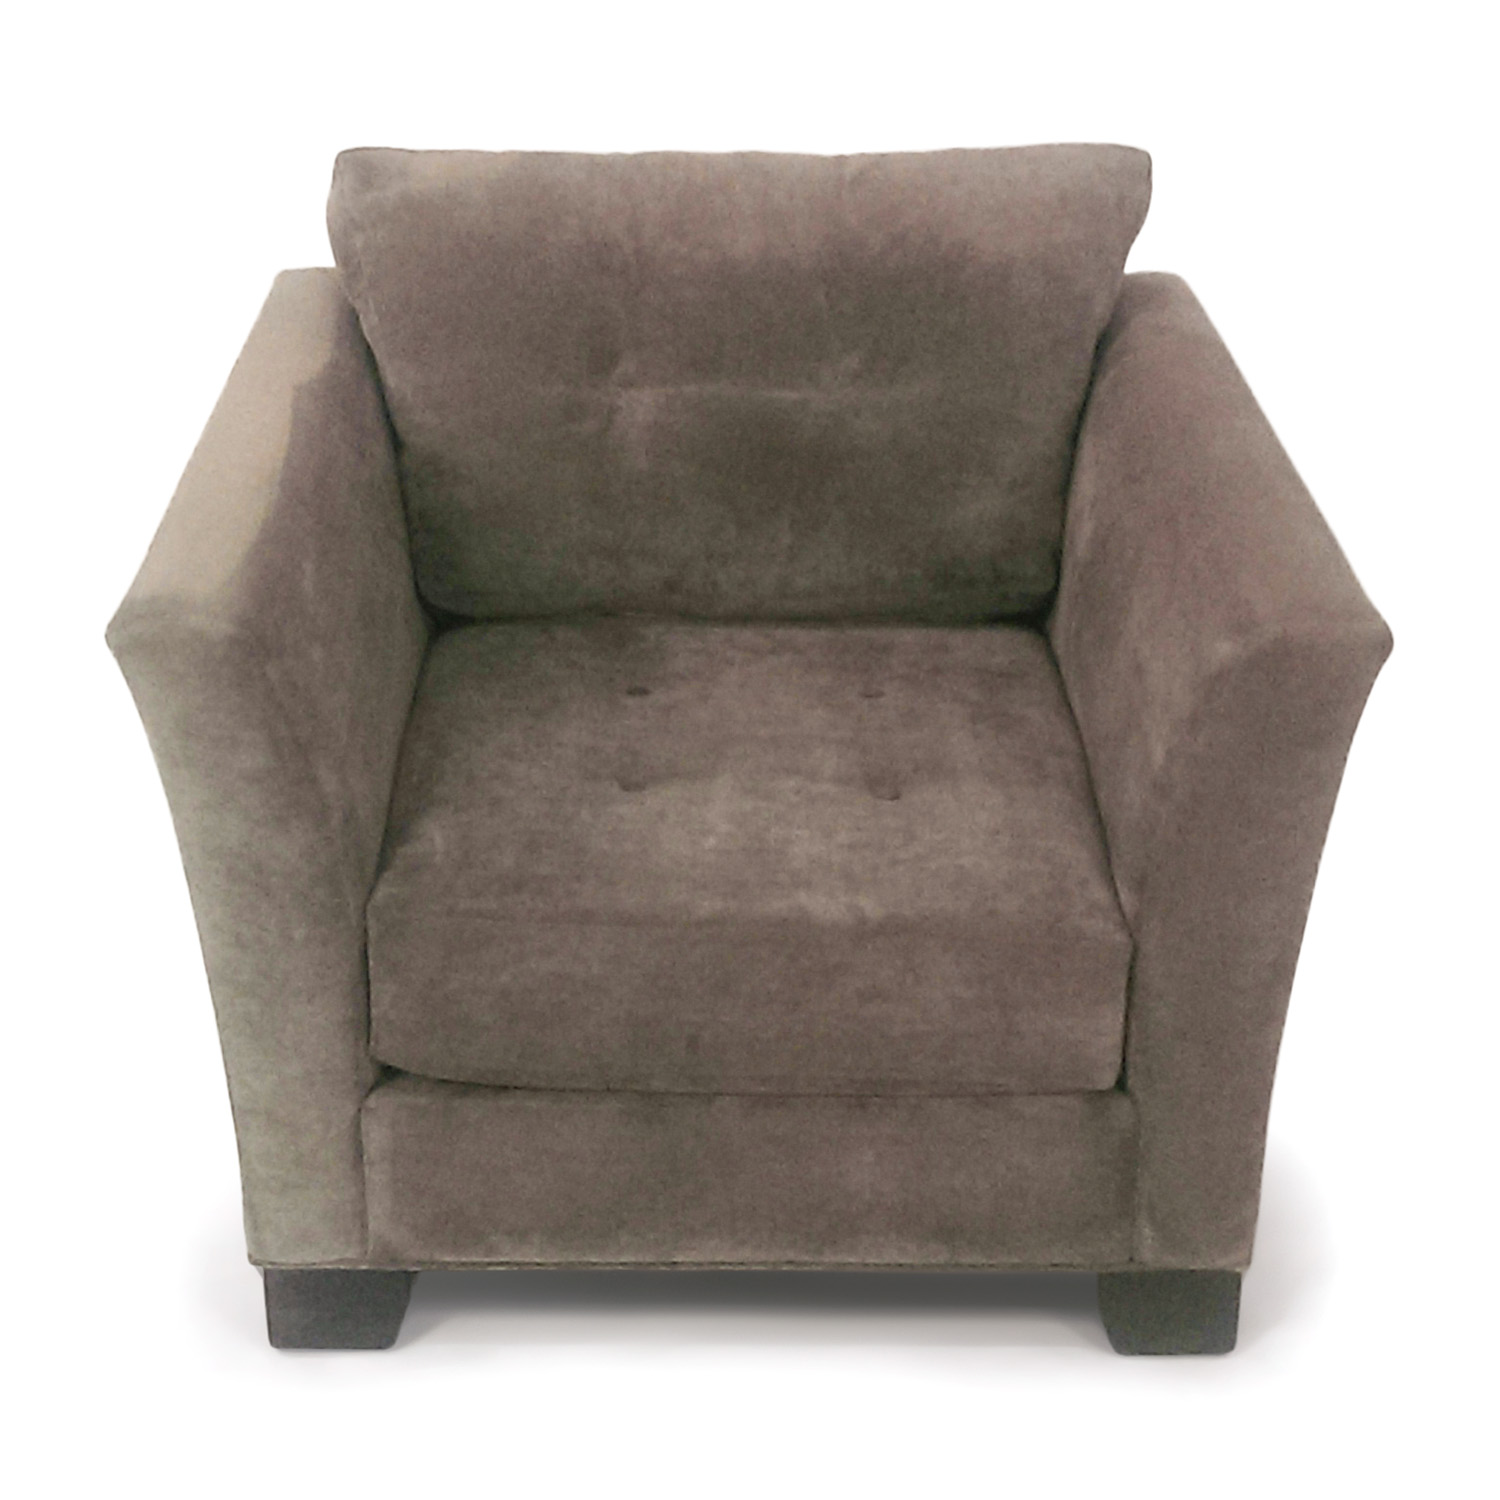 macy stool chair grey helps you stand up 30 off 39s tufted arm chairs